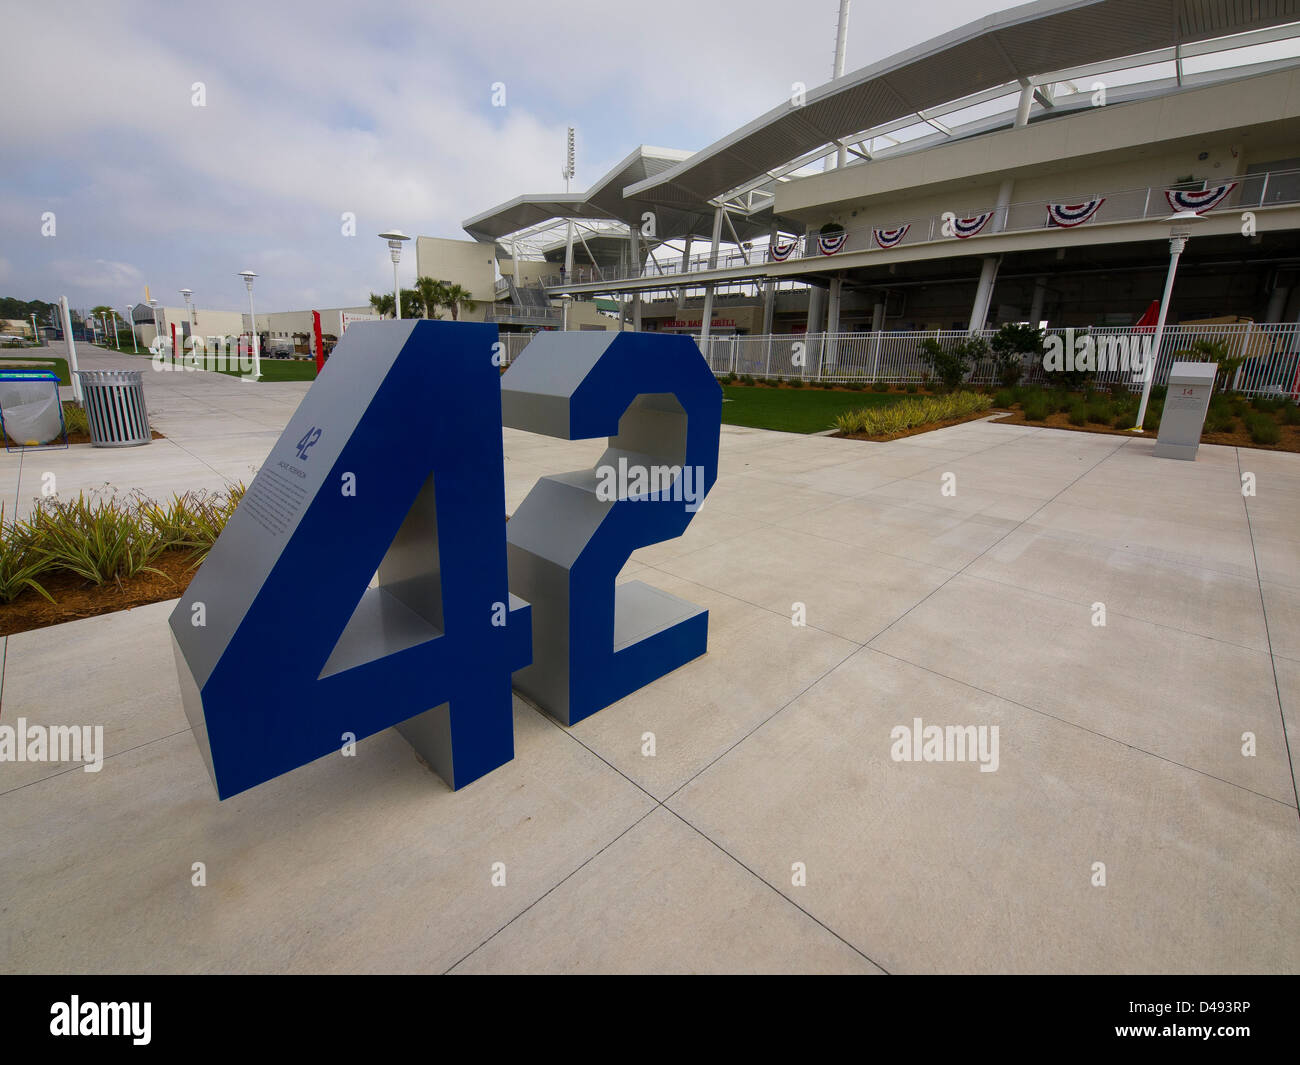 Brooklyn Dodger's number 42 worn by Jackie Robinson, remembered at Fenway South in Florida - Stock Image